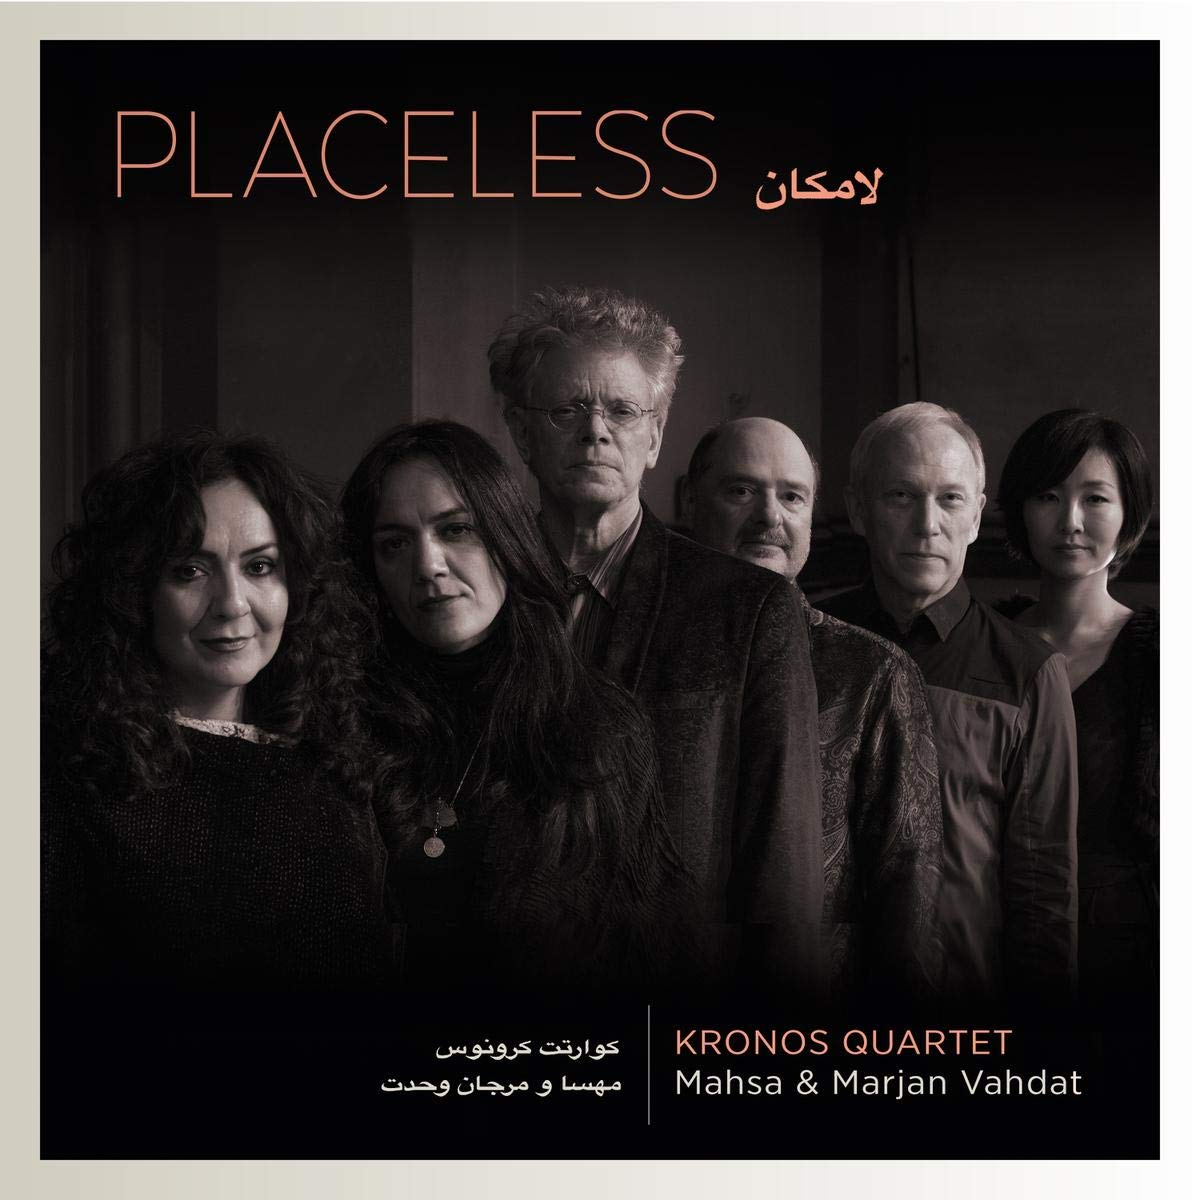 KRONOS QUARTET - Kronos Quartet With Mahsa & Marjan Vahdat : Placeless cover